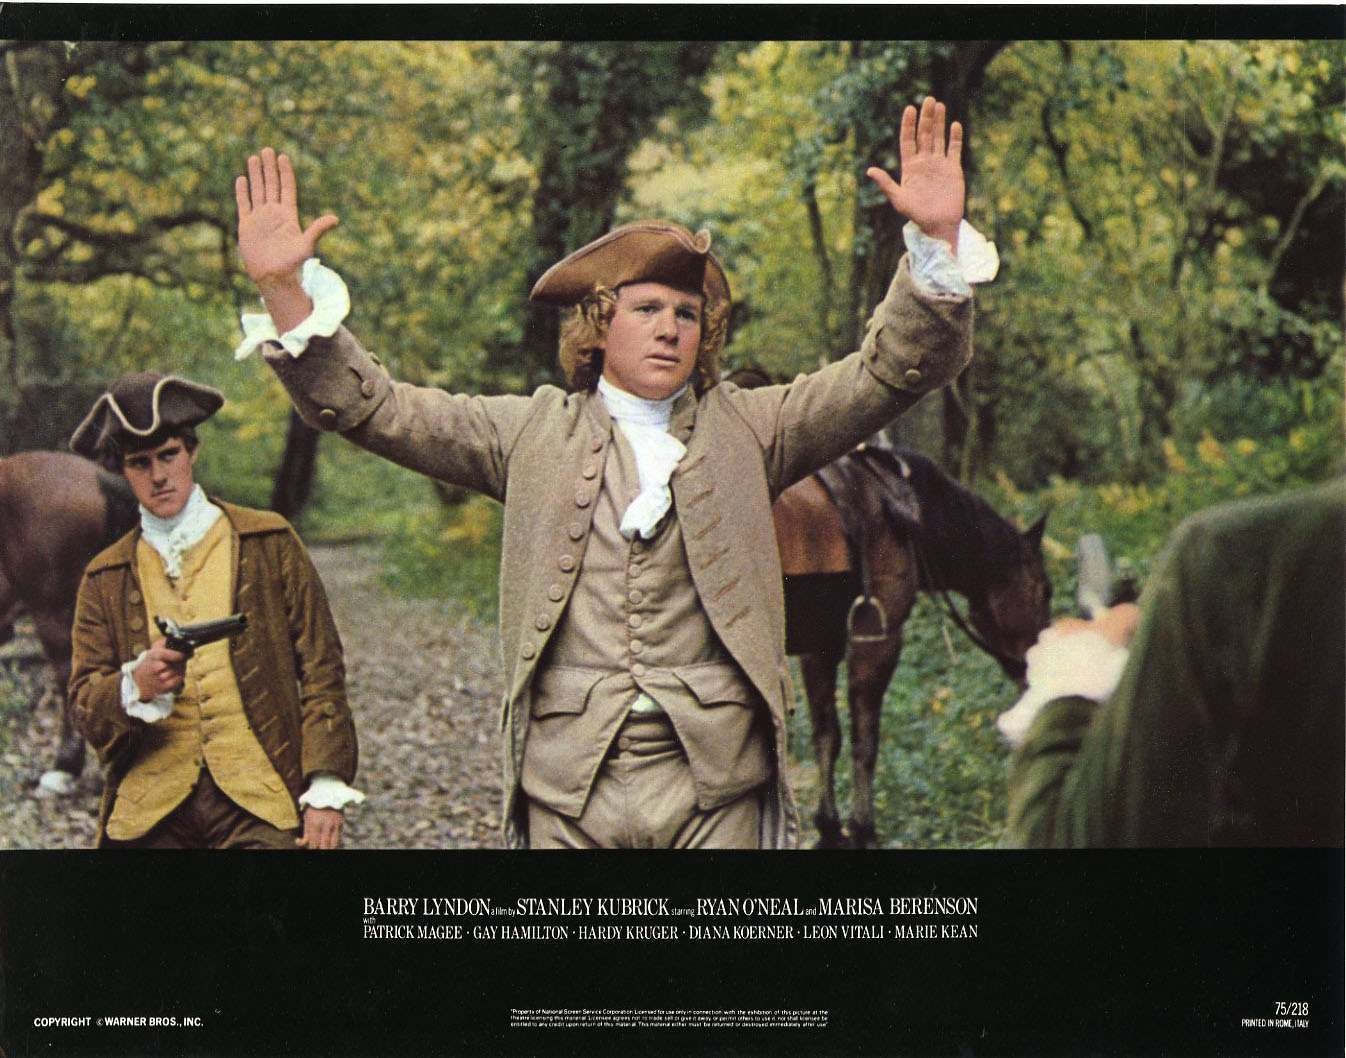 Barry Lyndon lobby card hands up